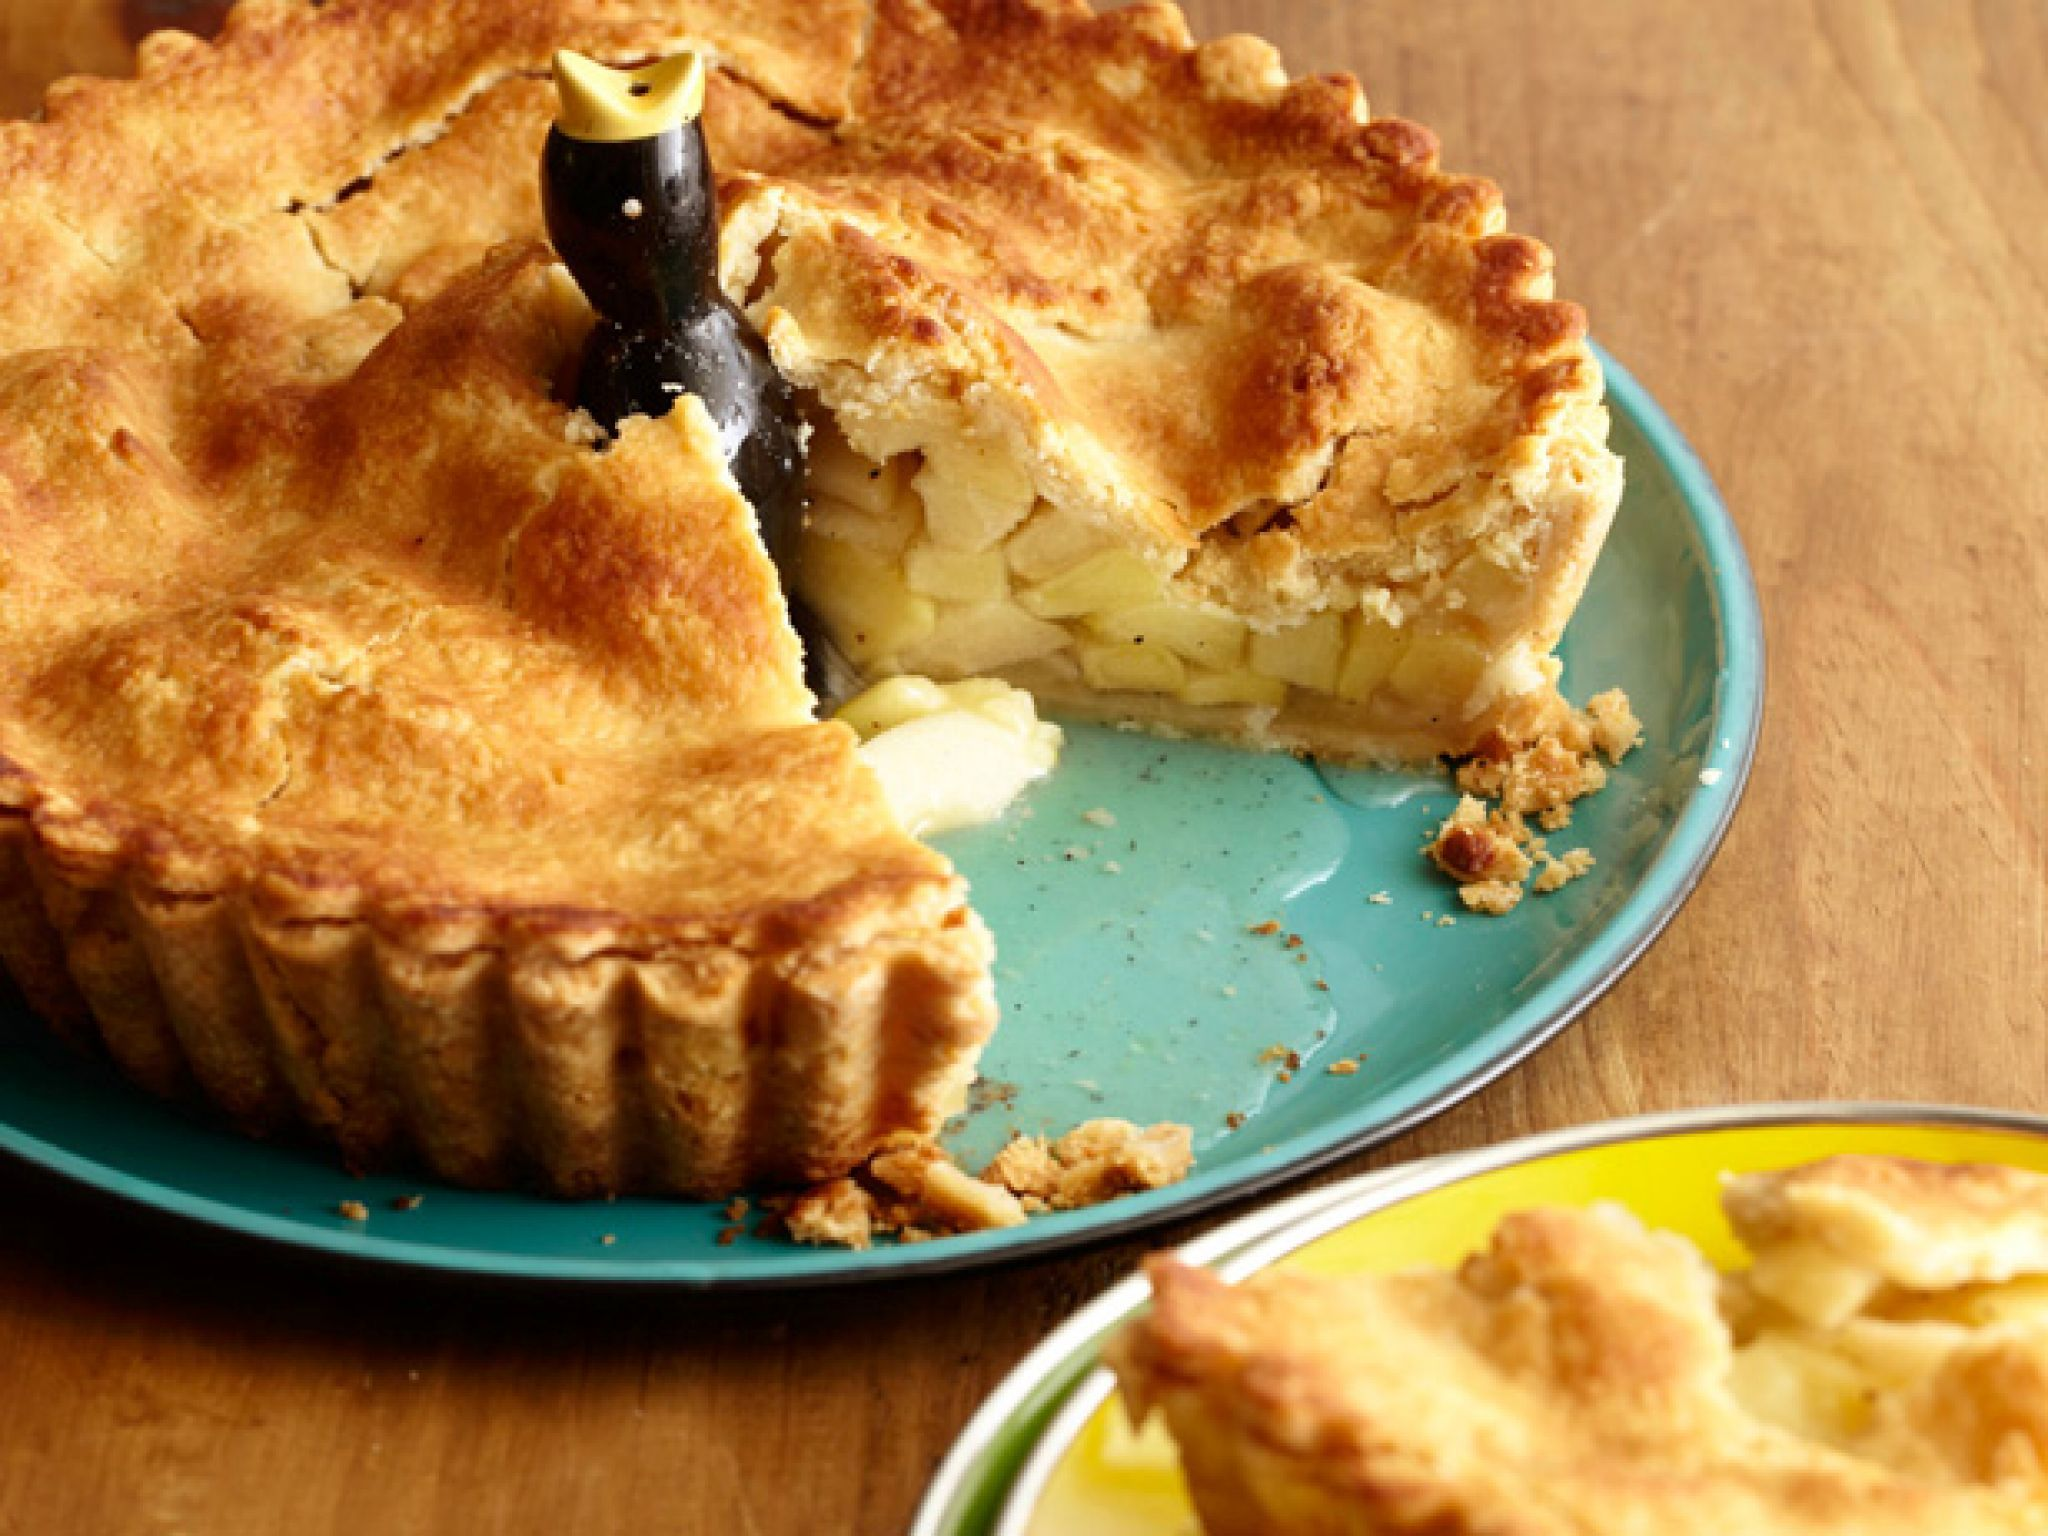 Super apple pie recipe apple pie recipes pie recipes and i have made many apple pies in my day and this is by far the absolute forumfinder Choice Image